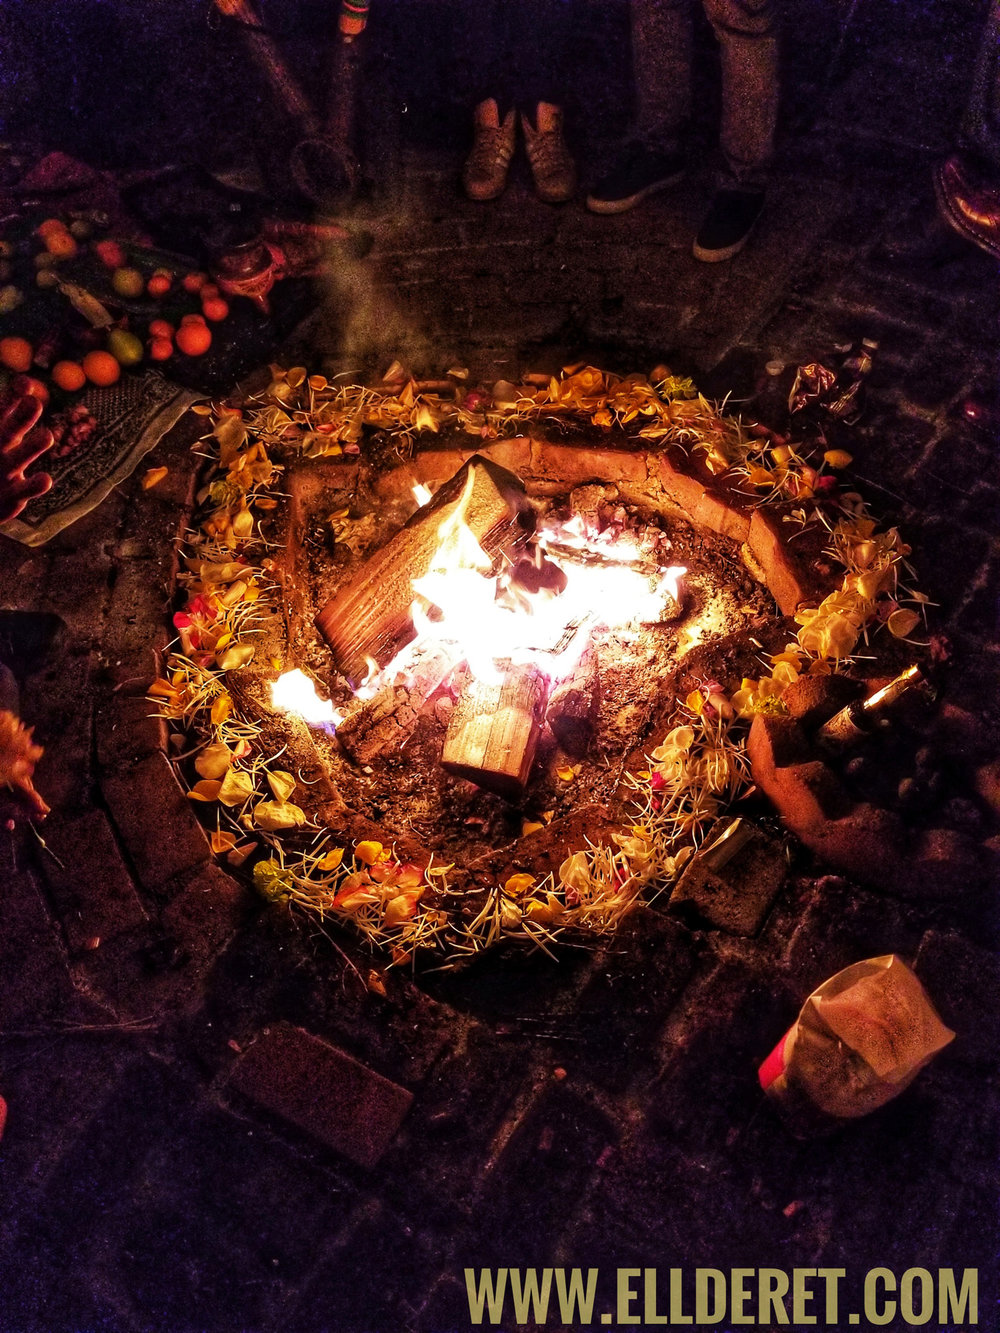 Celebration of Winter Solstice